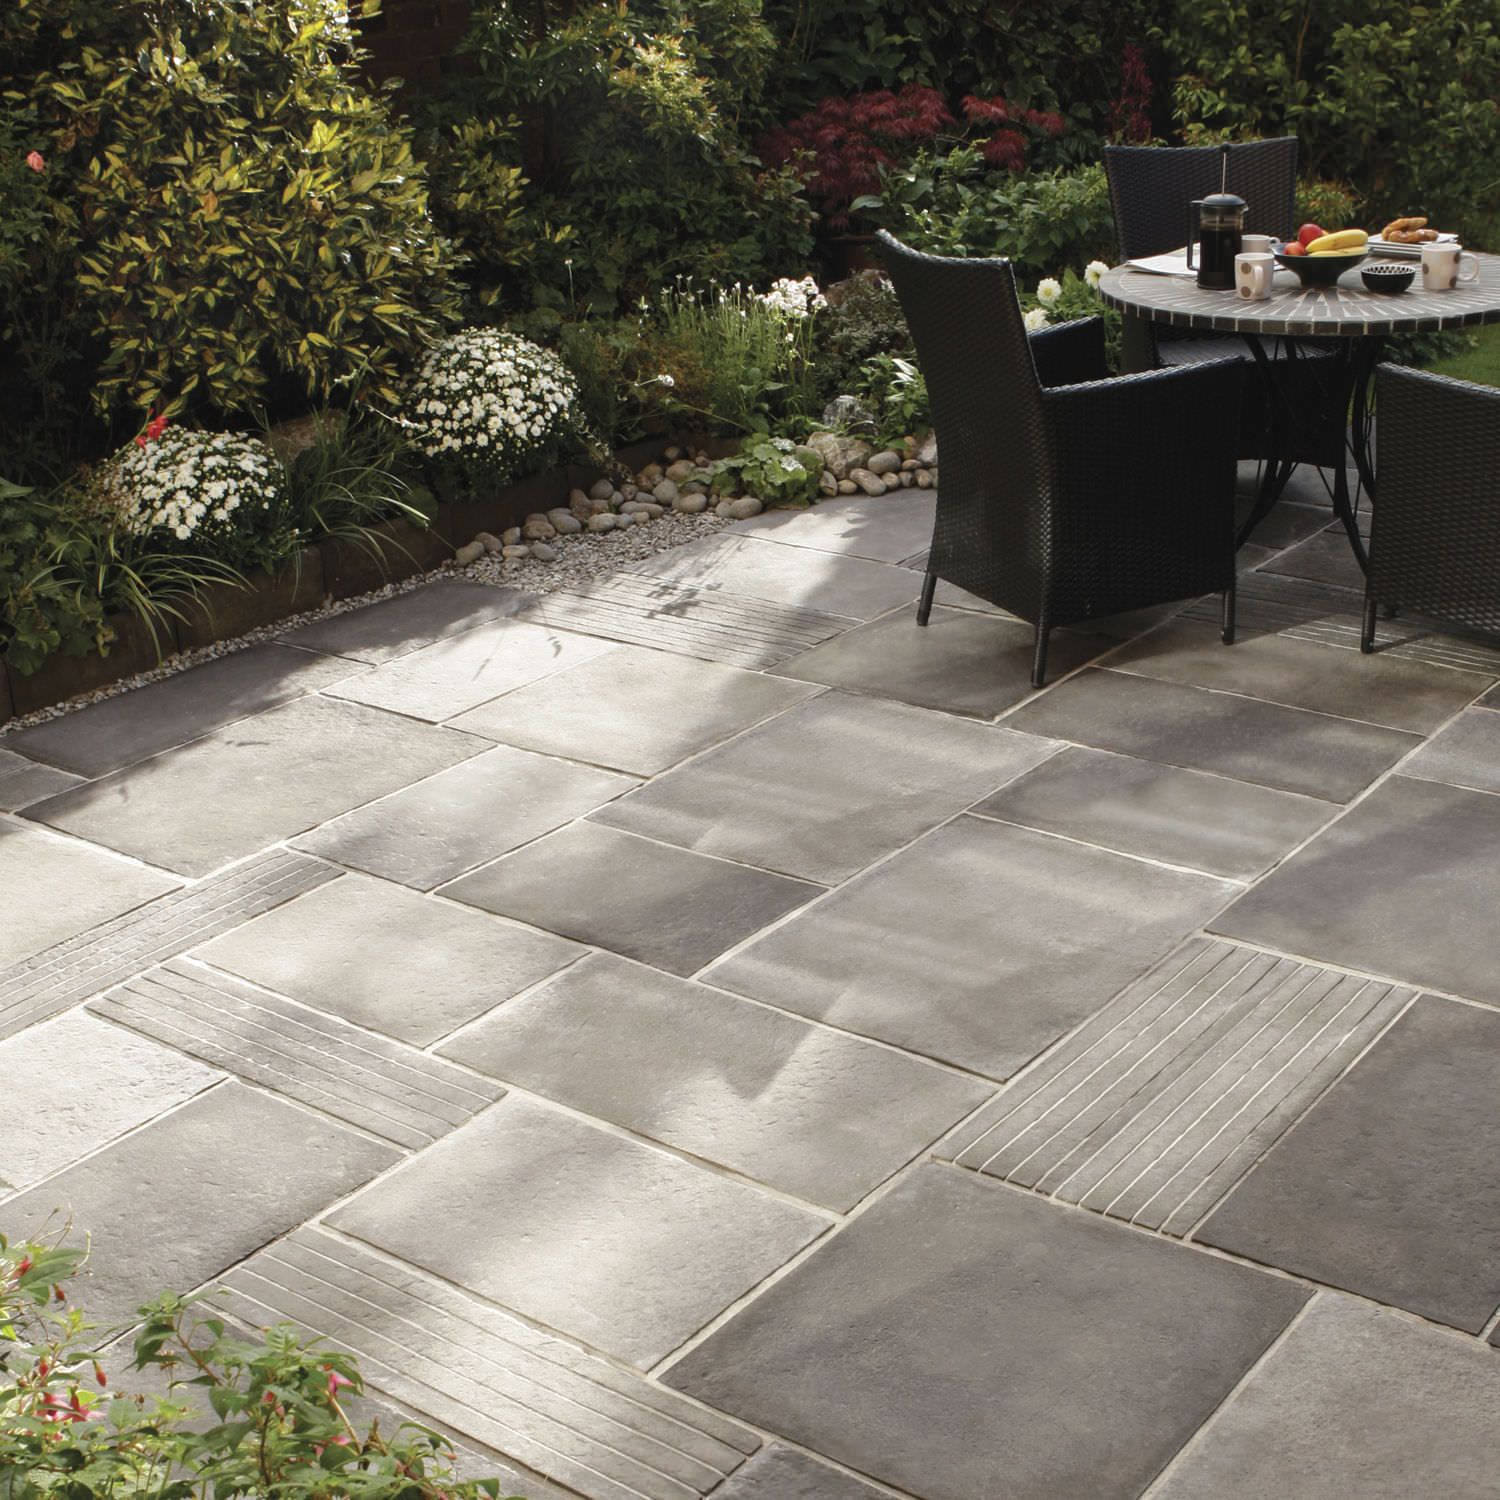 Paving Designs For Backyard Style Awesome Decorating Design